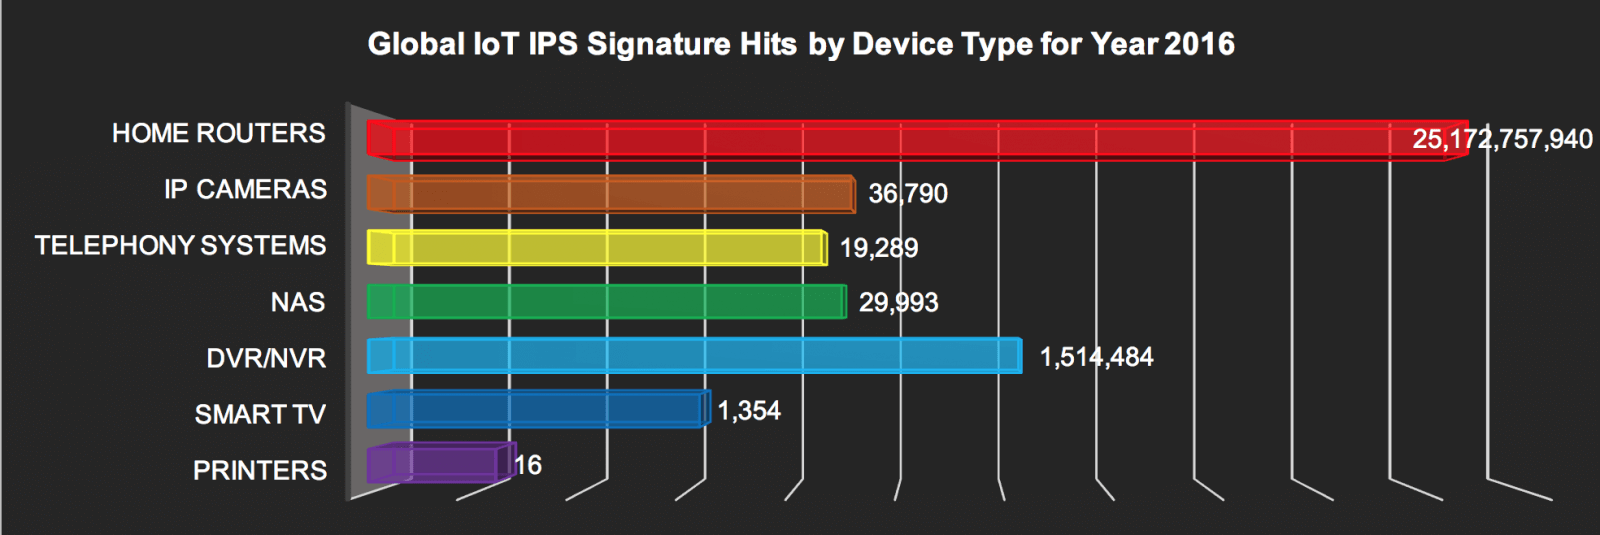 GLOBAL IoT IPS signature hits by device - 2016